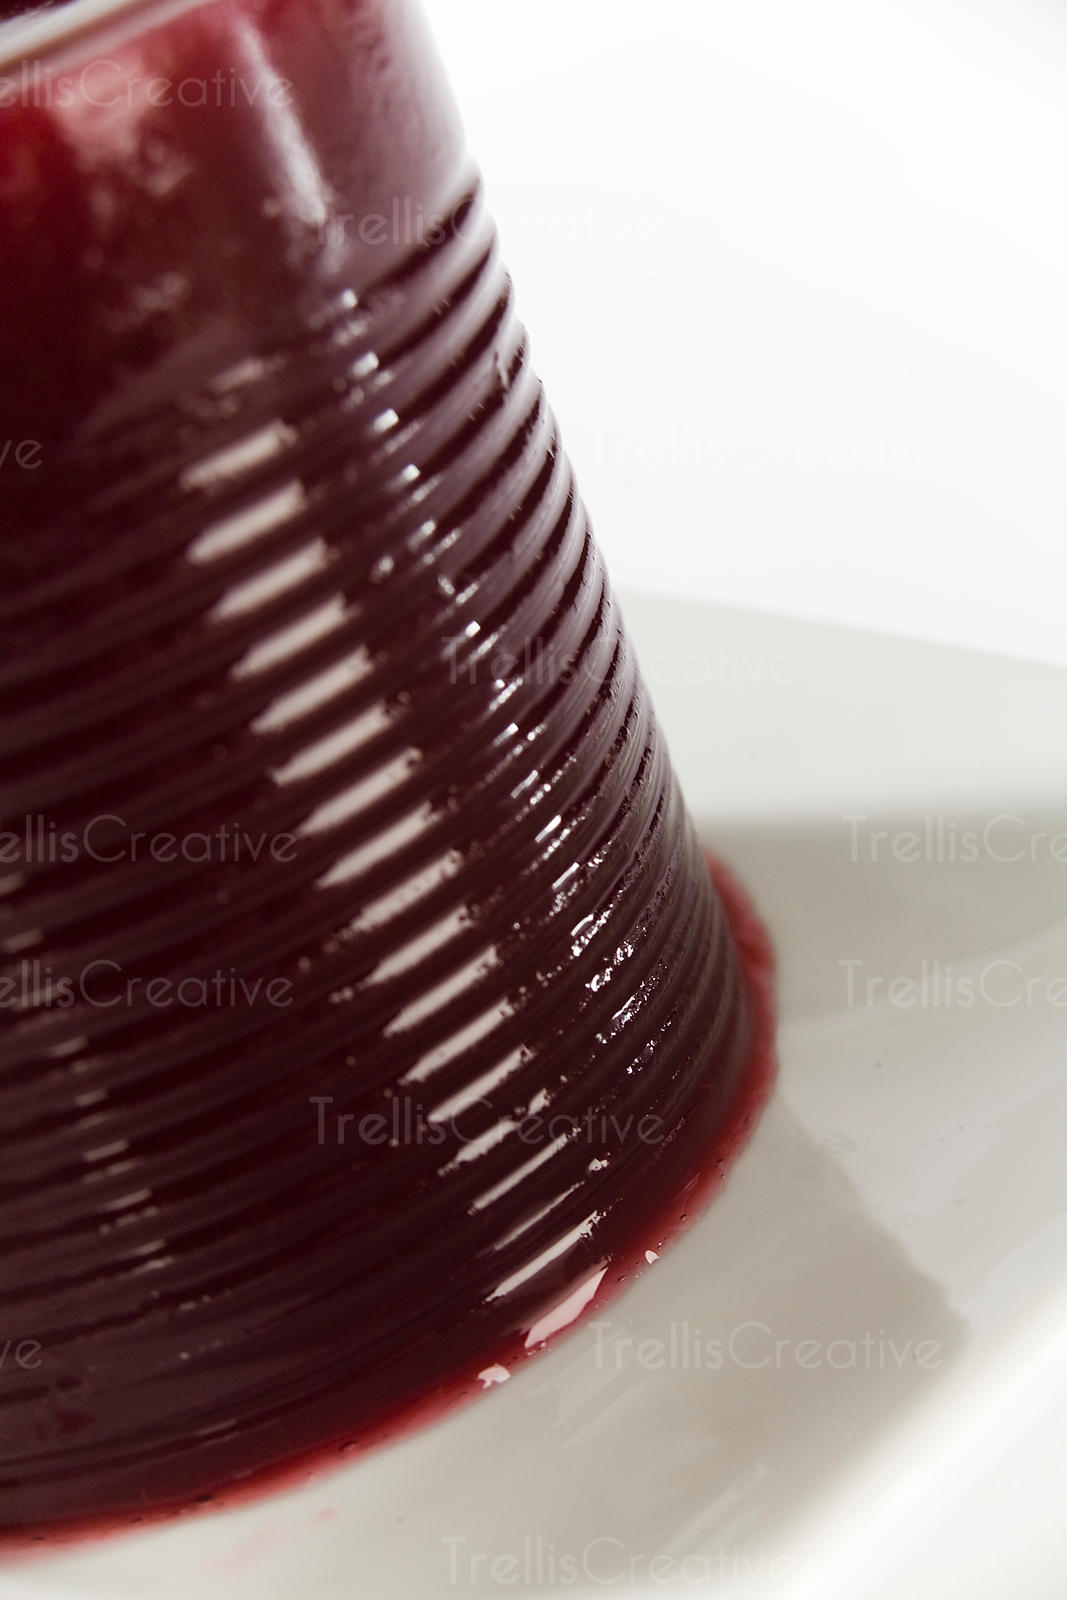 Canned cranberry sauce on a white platter